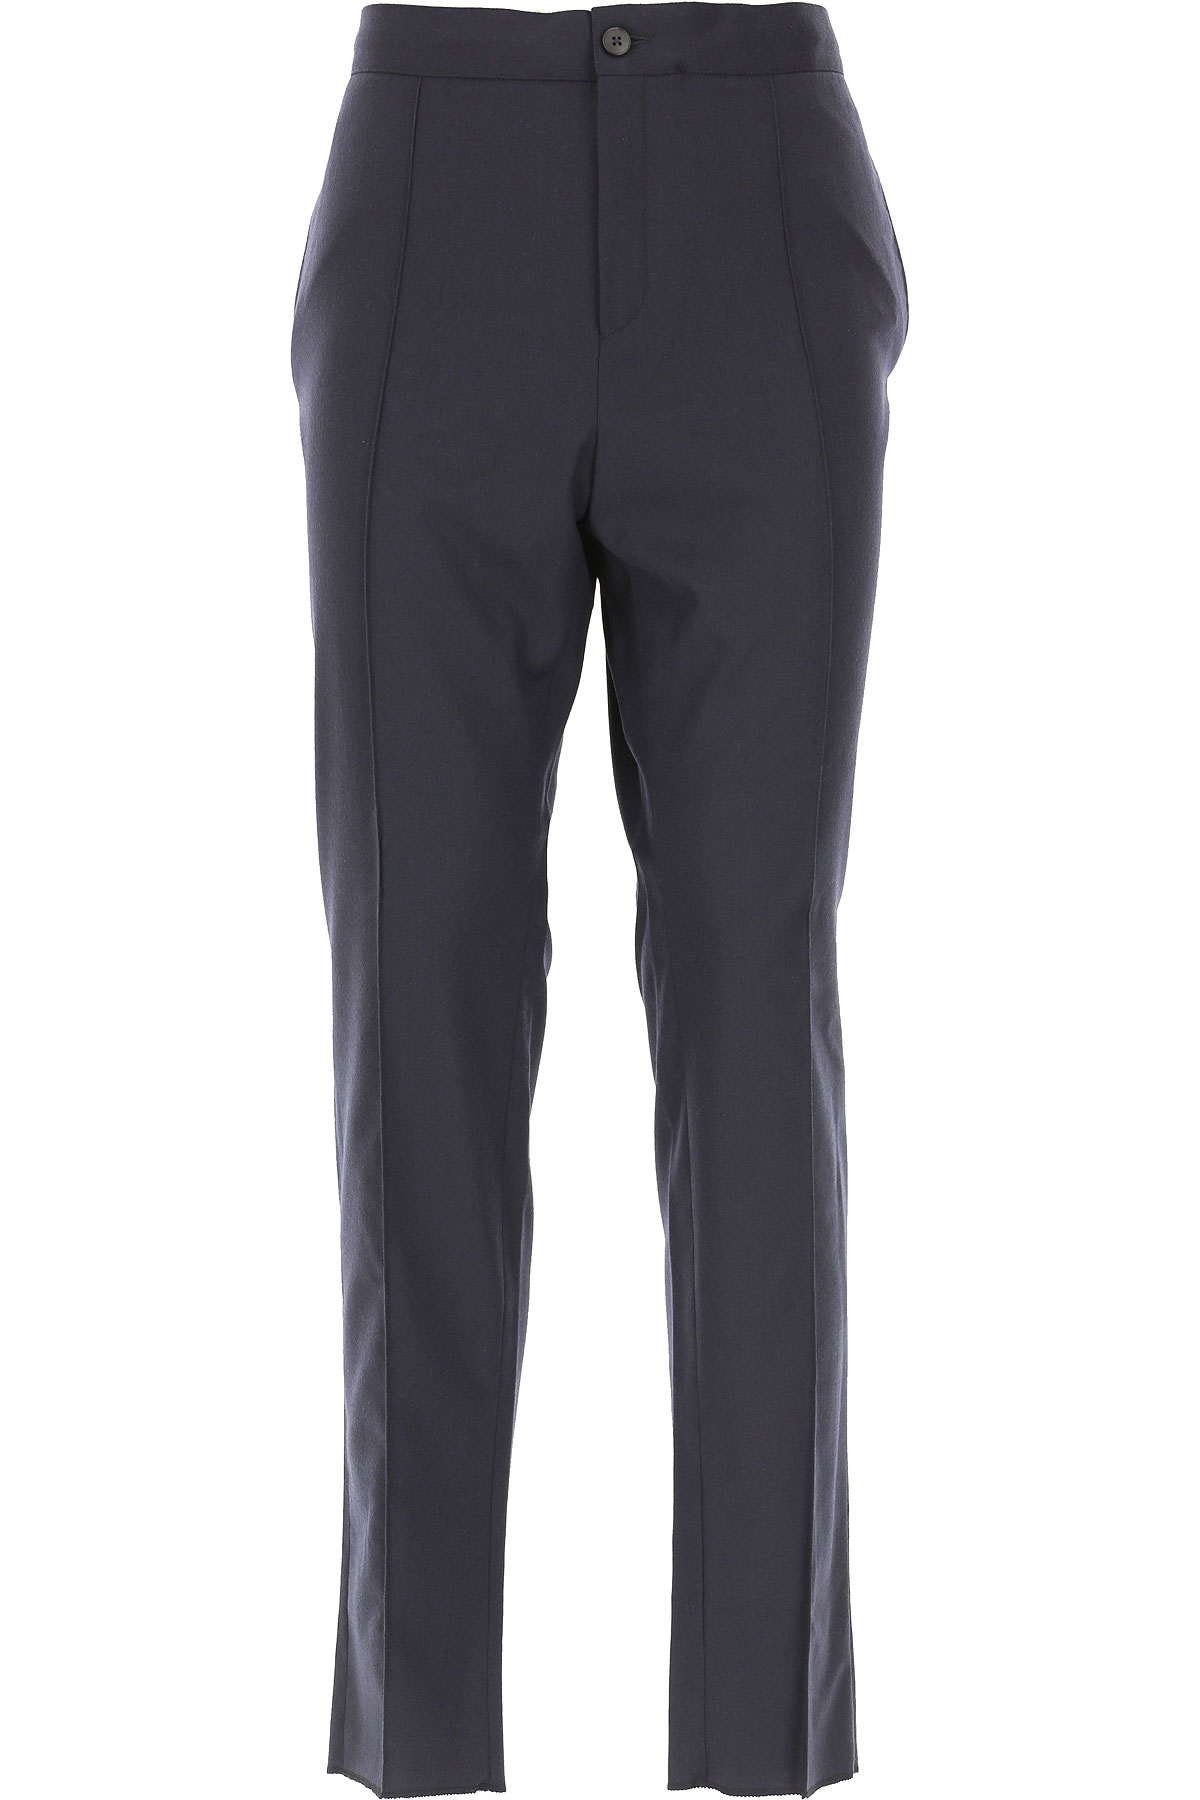 Ermenegildo Zegna Pants for Men, Dark Blue, Wool, 2019, 30 32